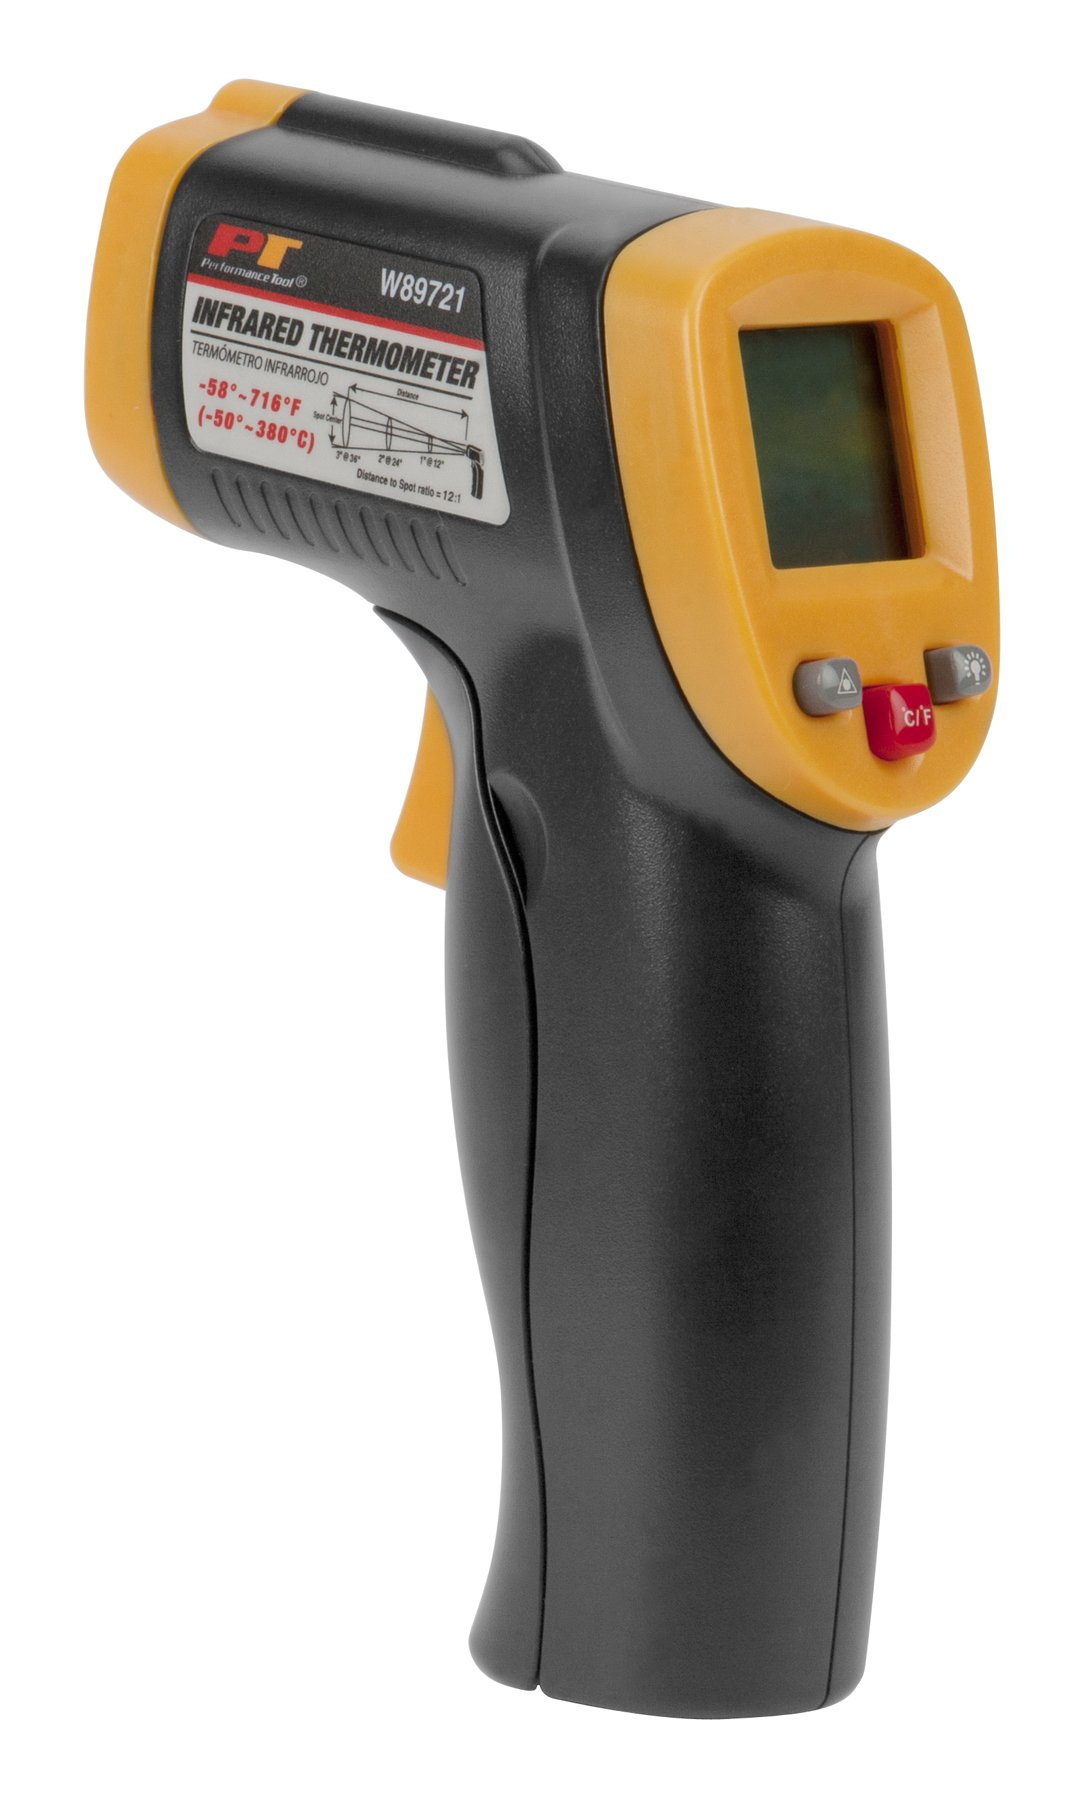 Performance Tool W89721 Non-Contact Digital Laser Infrared Thermometer, Orange and Black With 12:1 Spot Ratio